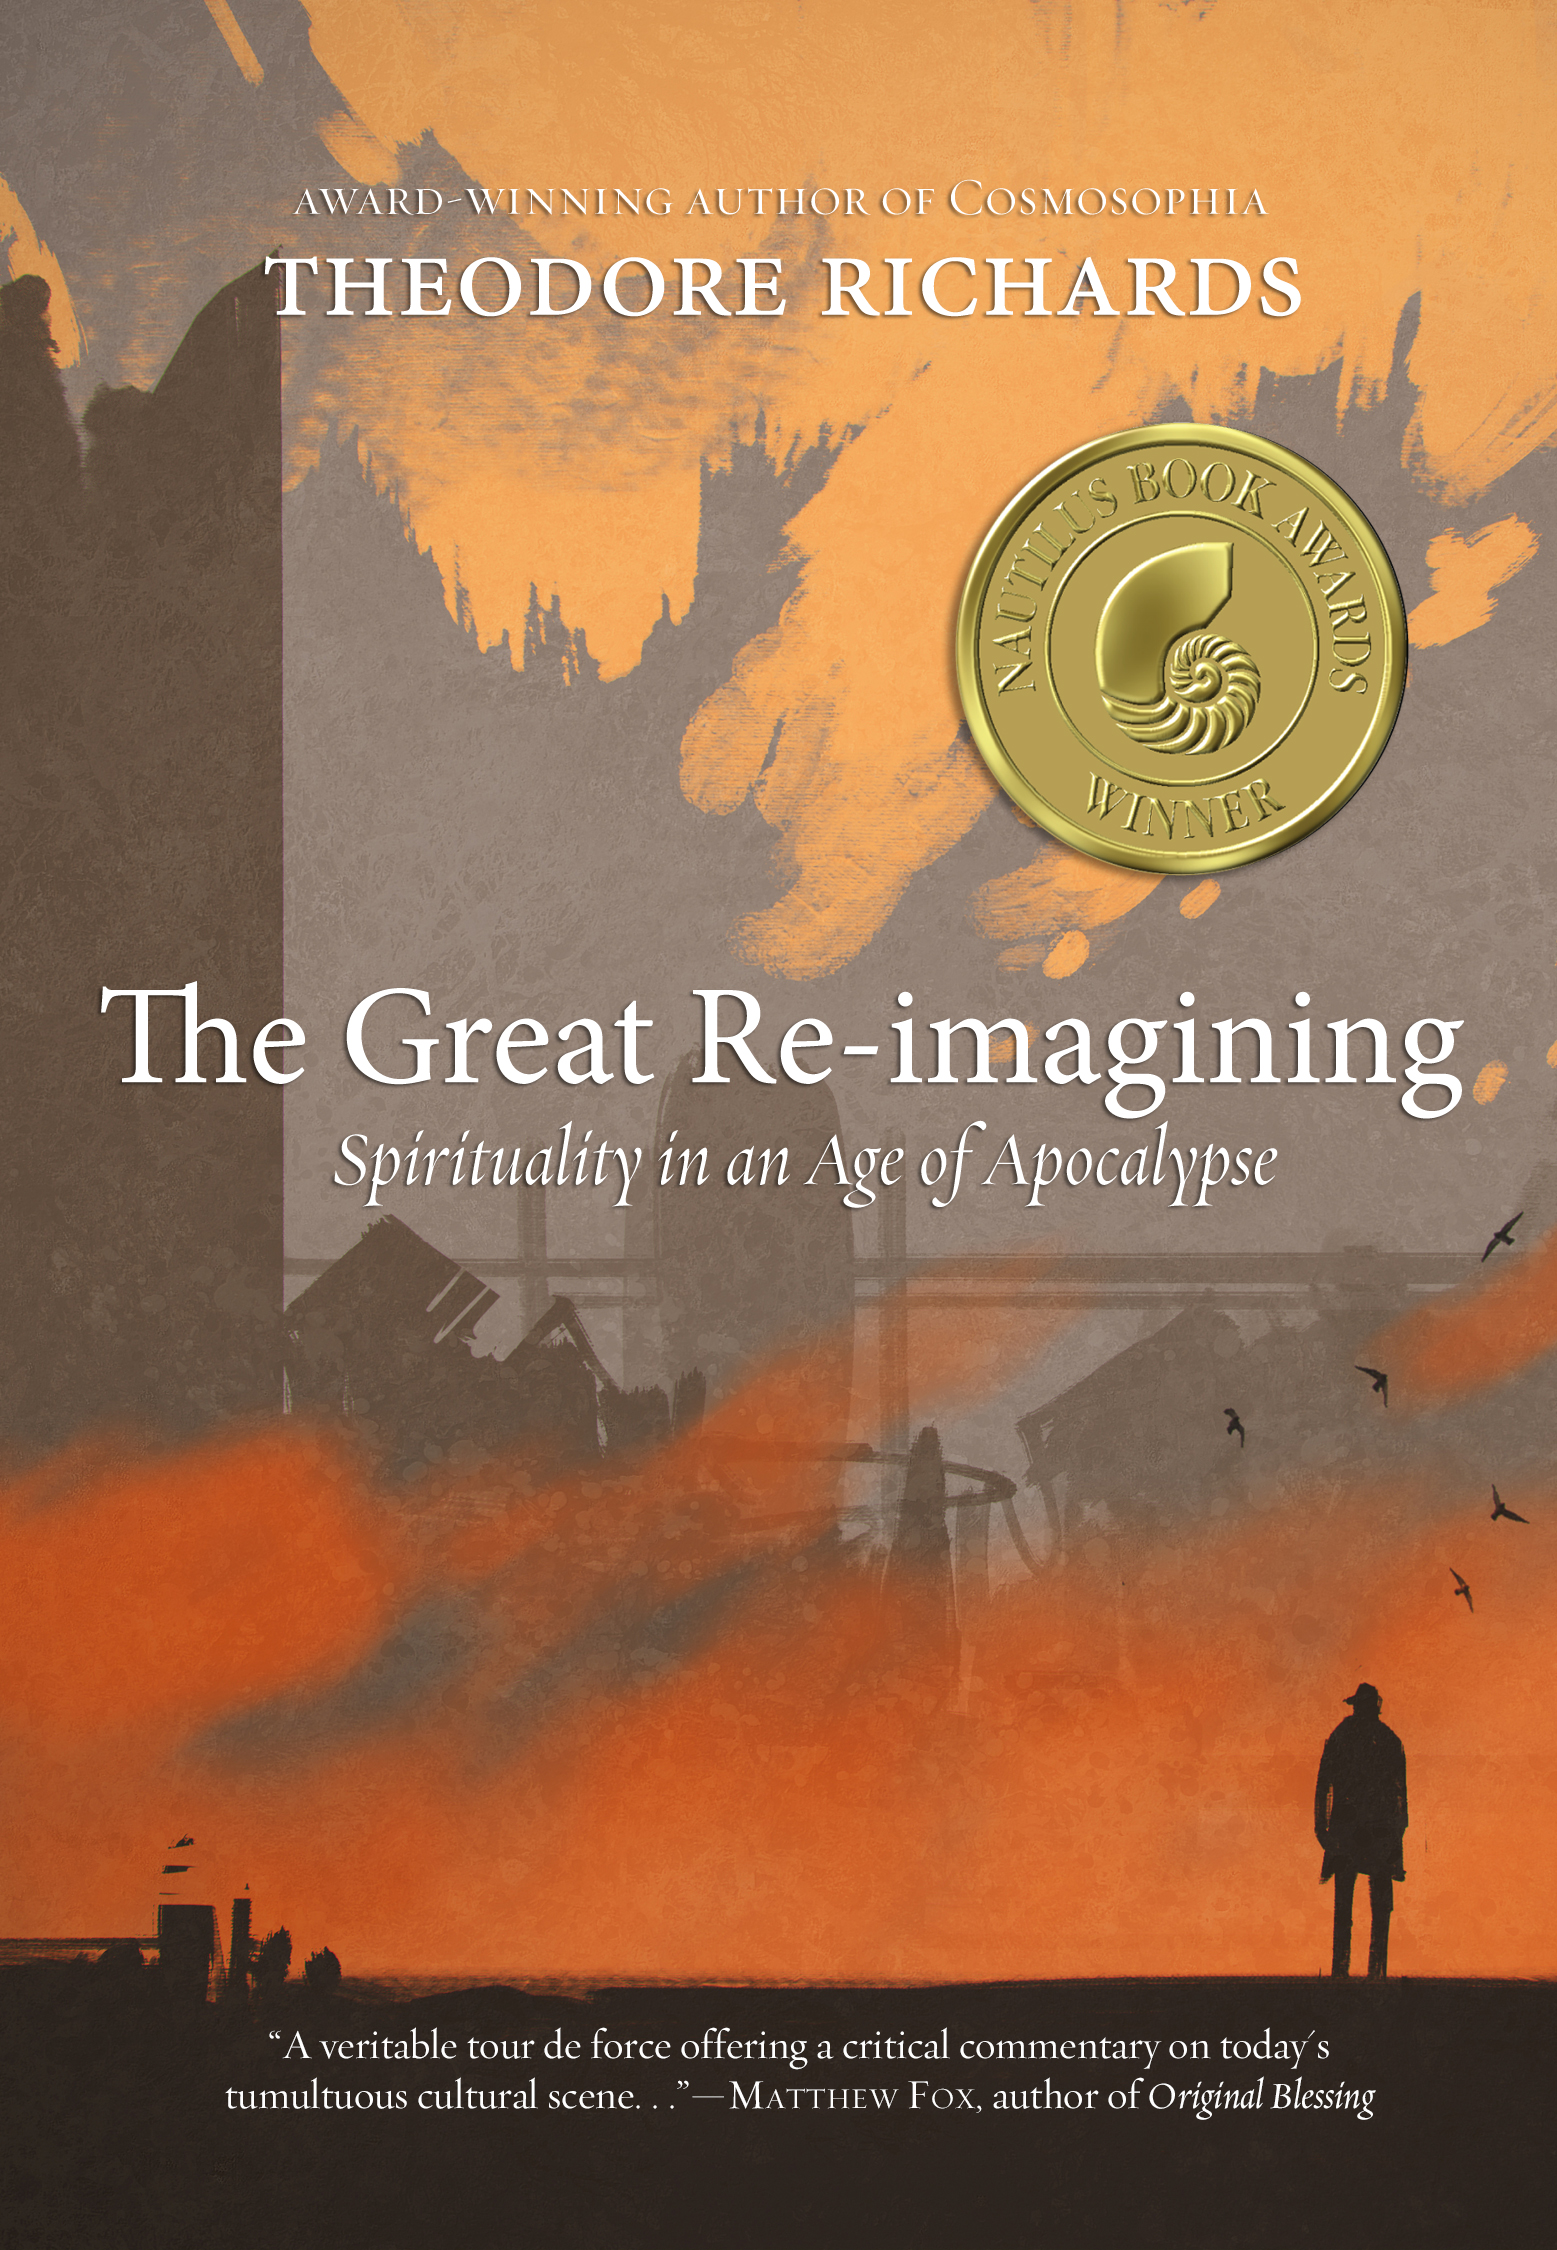 The Great Re-imagining